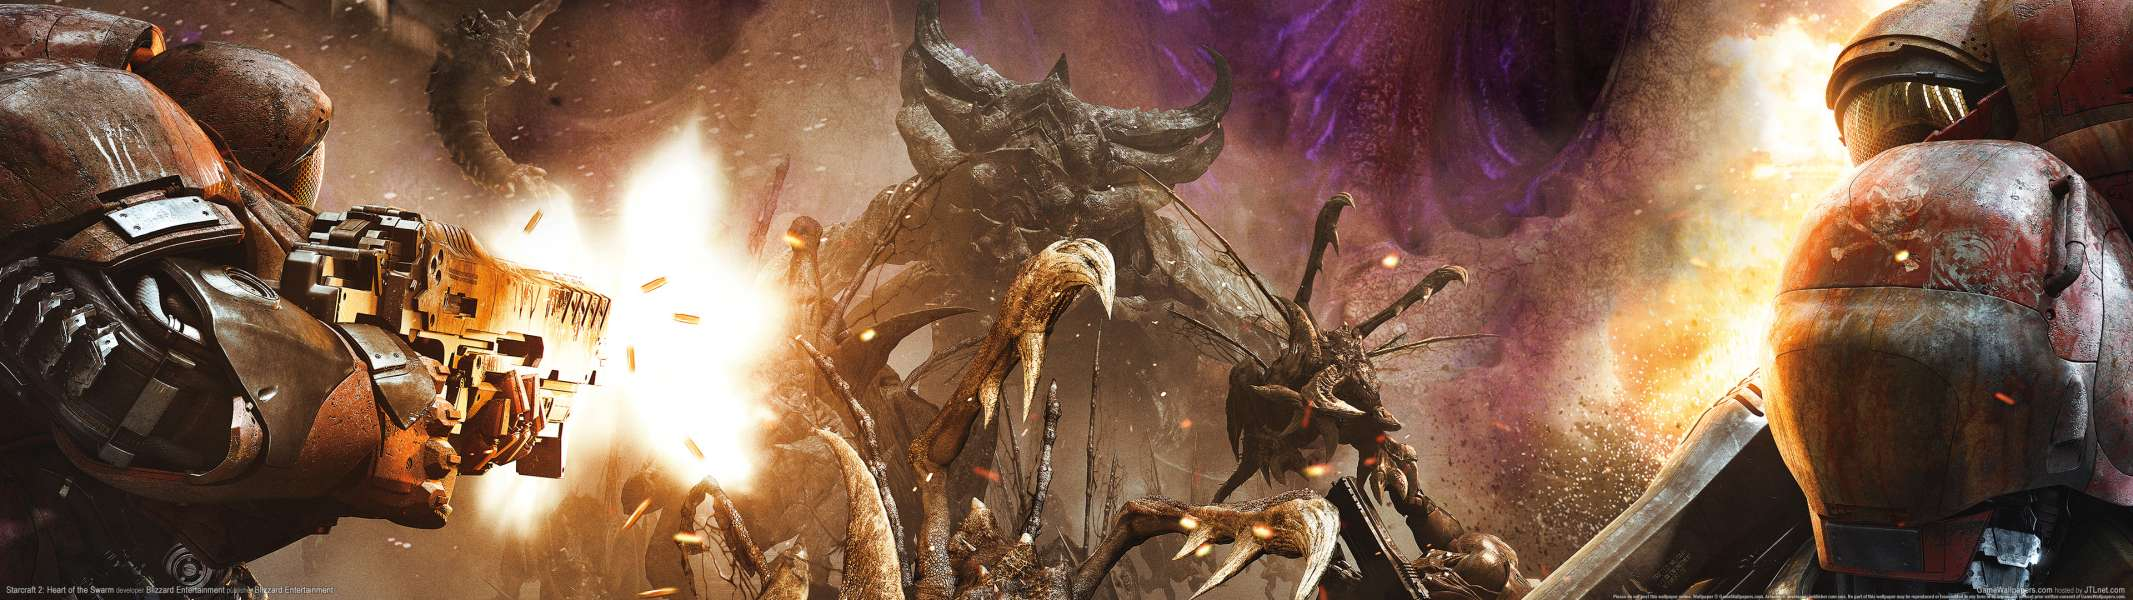 StarCraft 2: Heart of the Swarm dual screen wallpaper or background